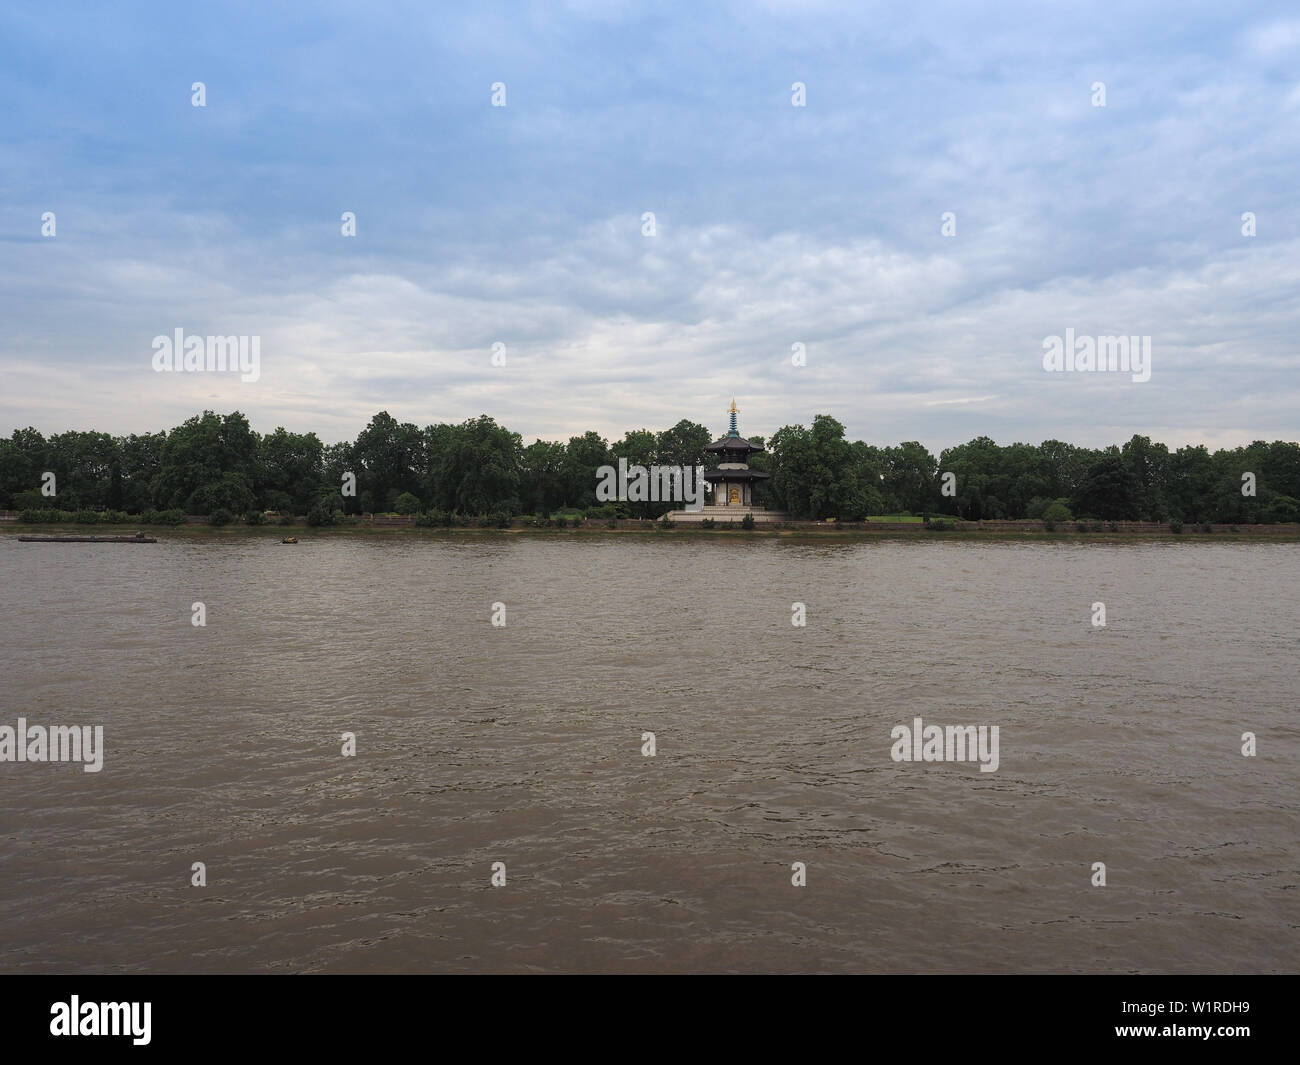 Japanese Buddhist Peace Pagoda temple in Battersea Park by the River Thames London in London, UK - Stock Image